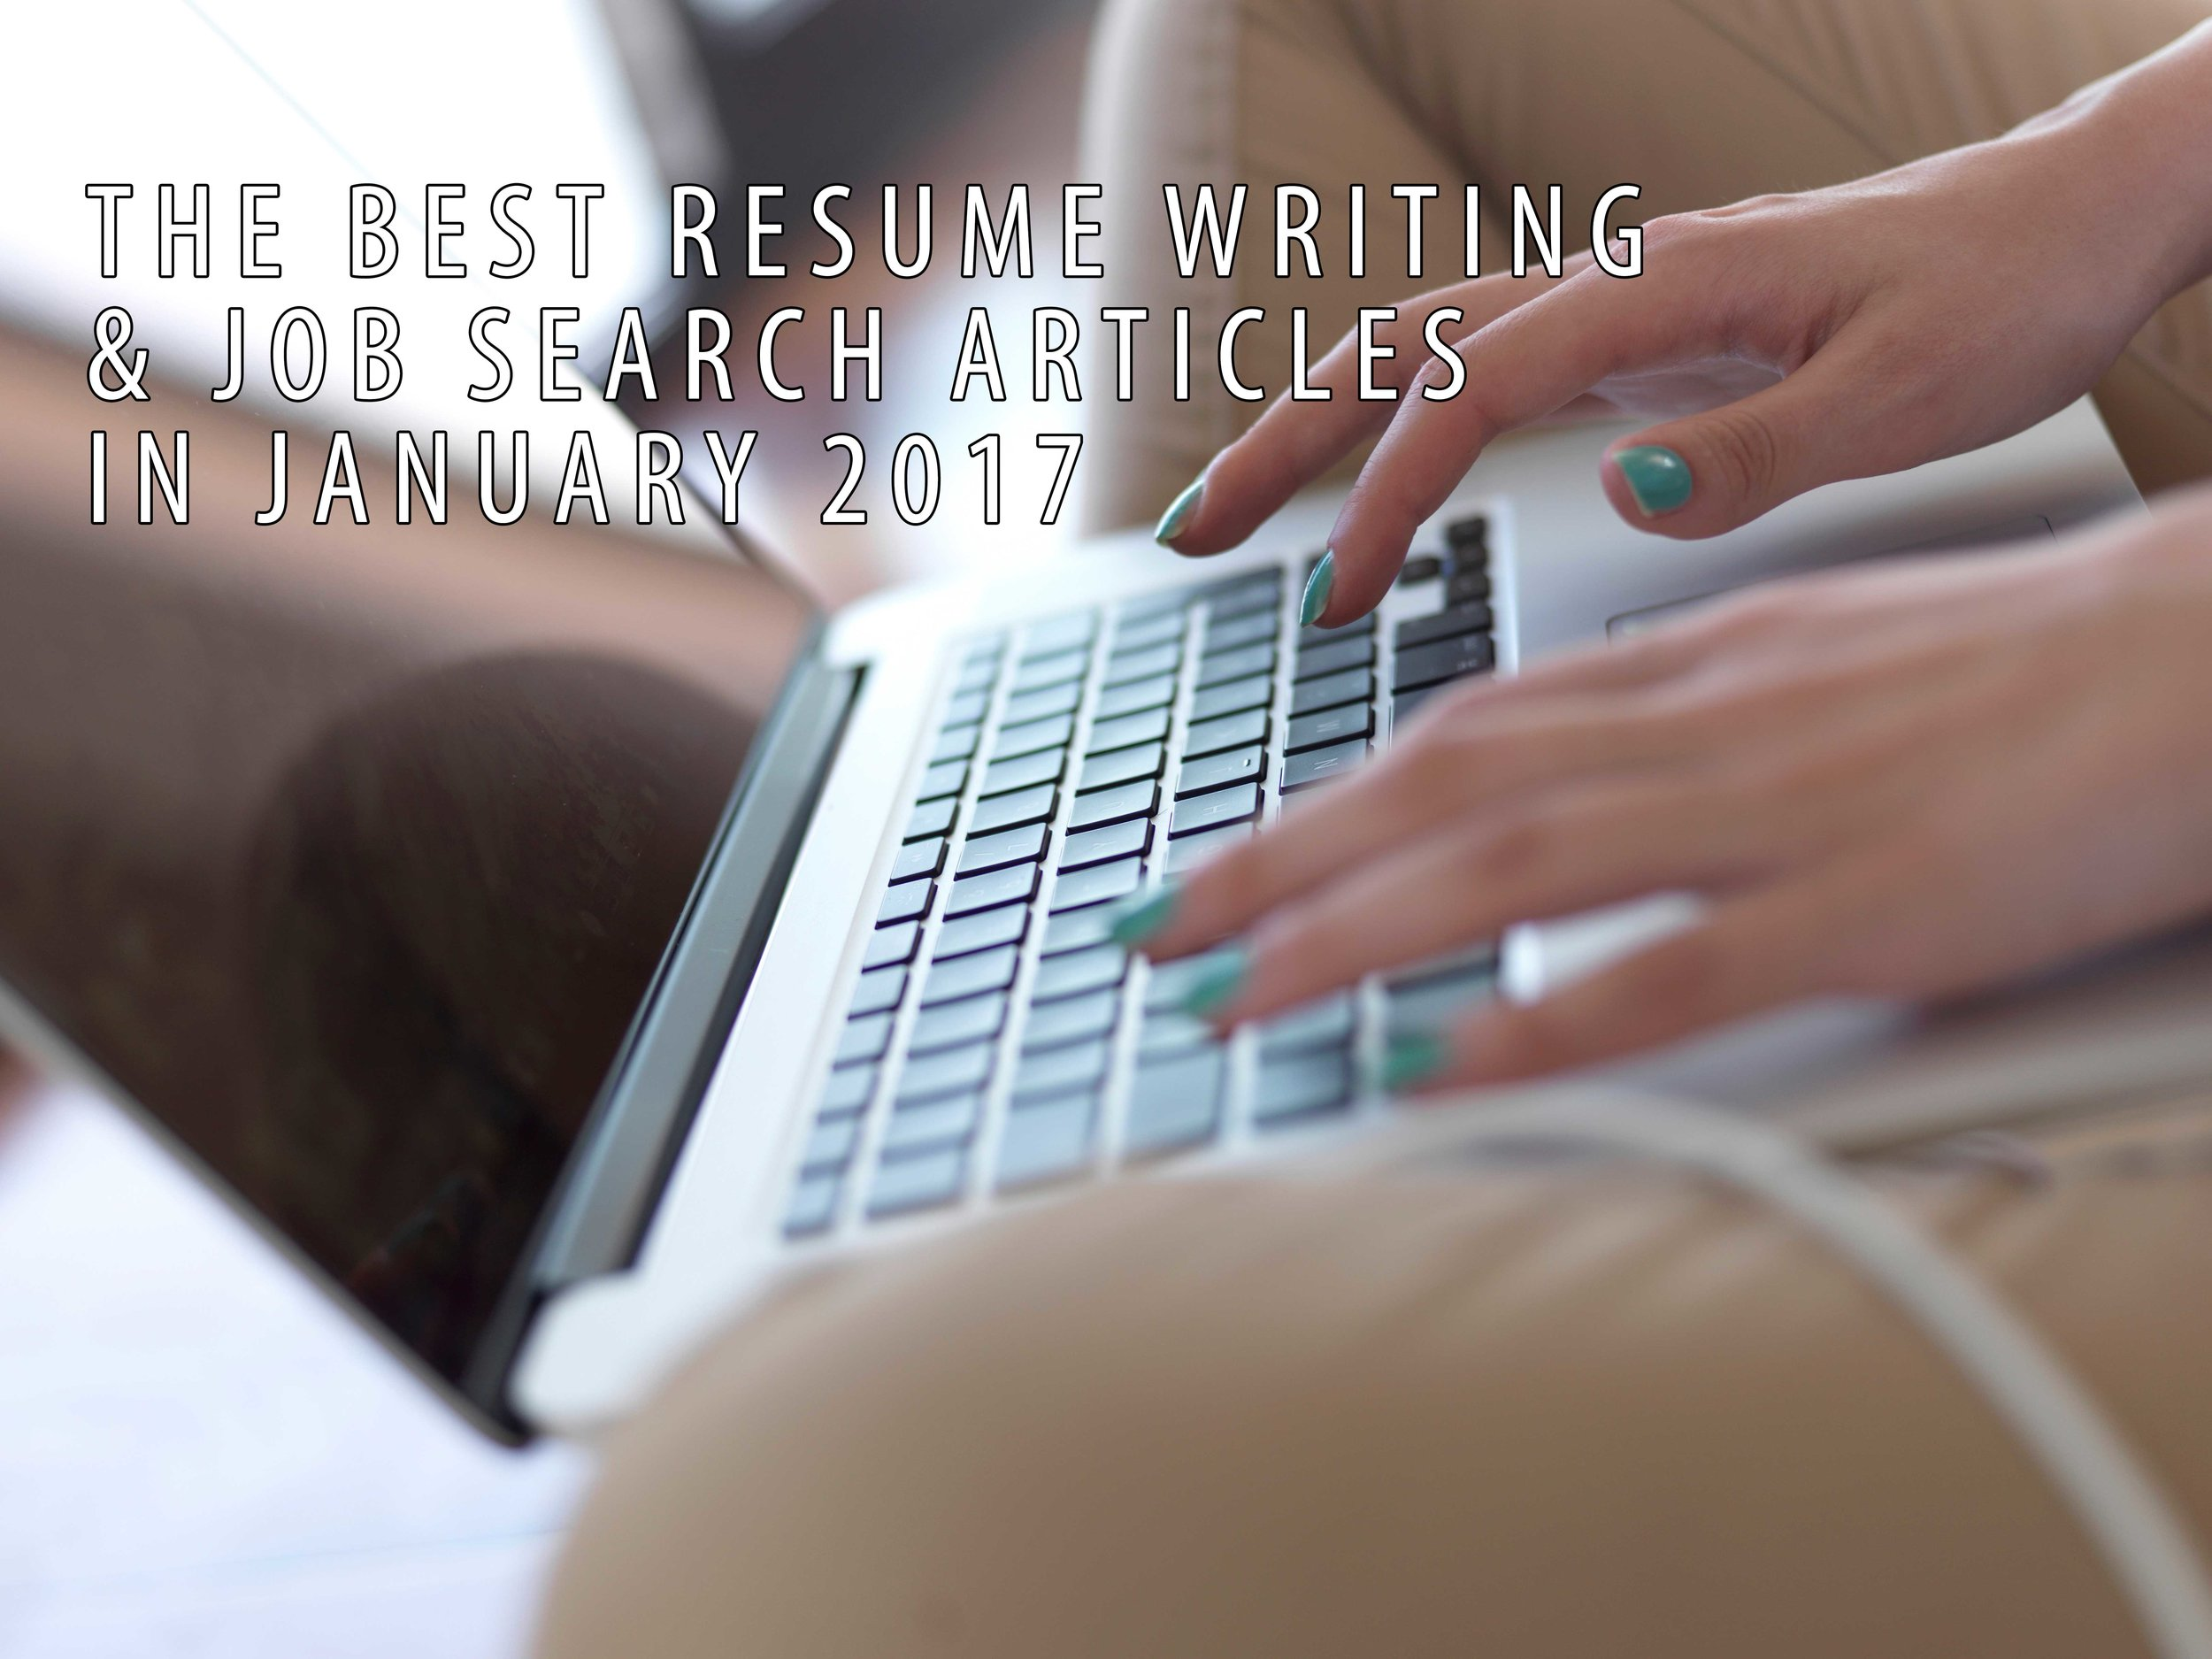 Job Search & Resume Writing Articles 2017